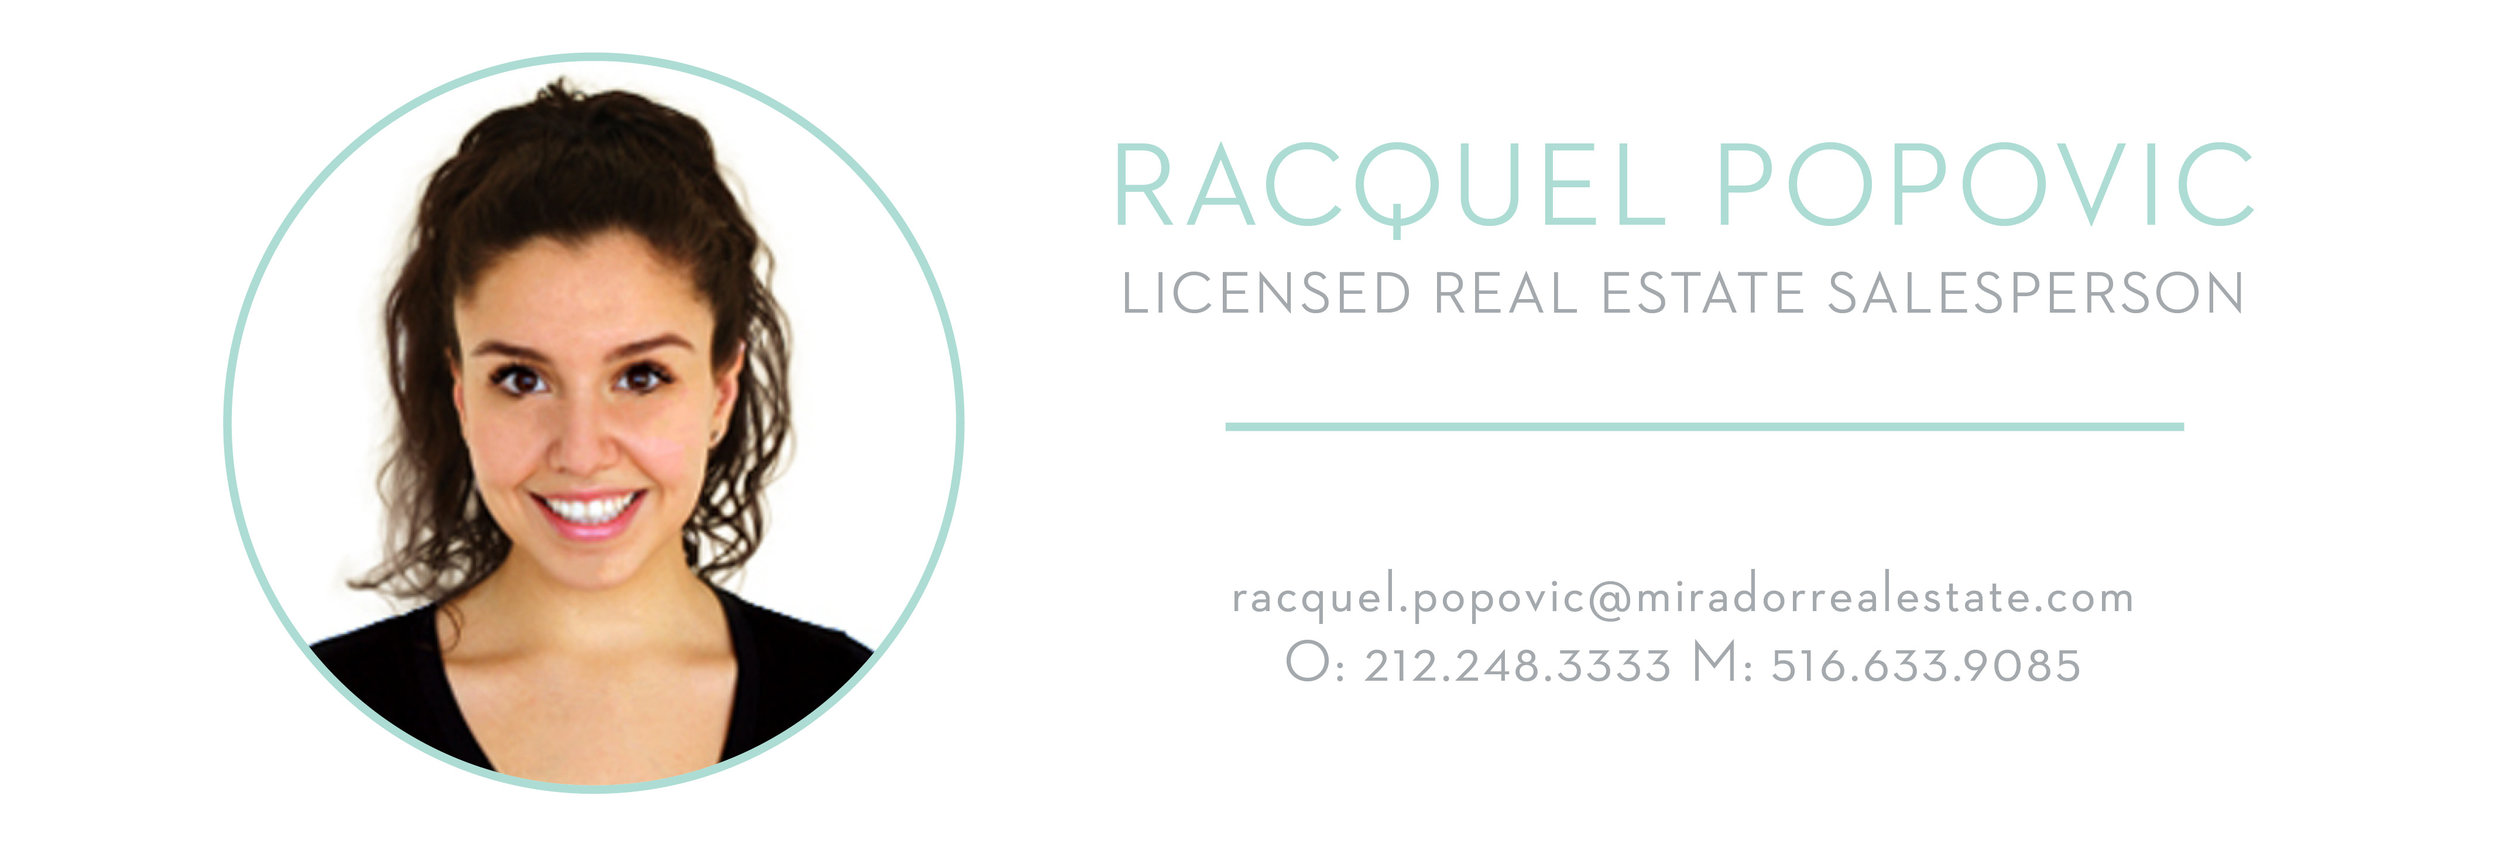 raquel contact card.jpg